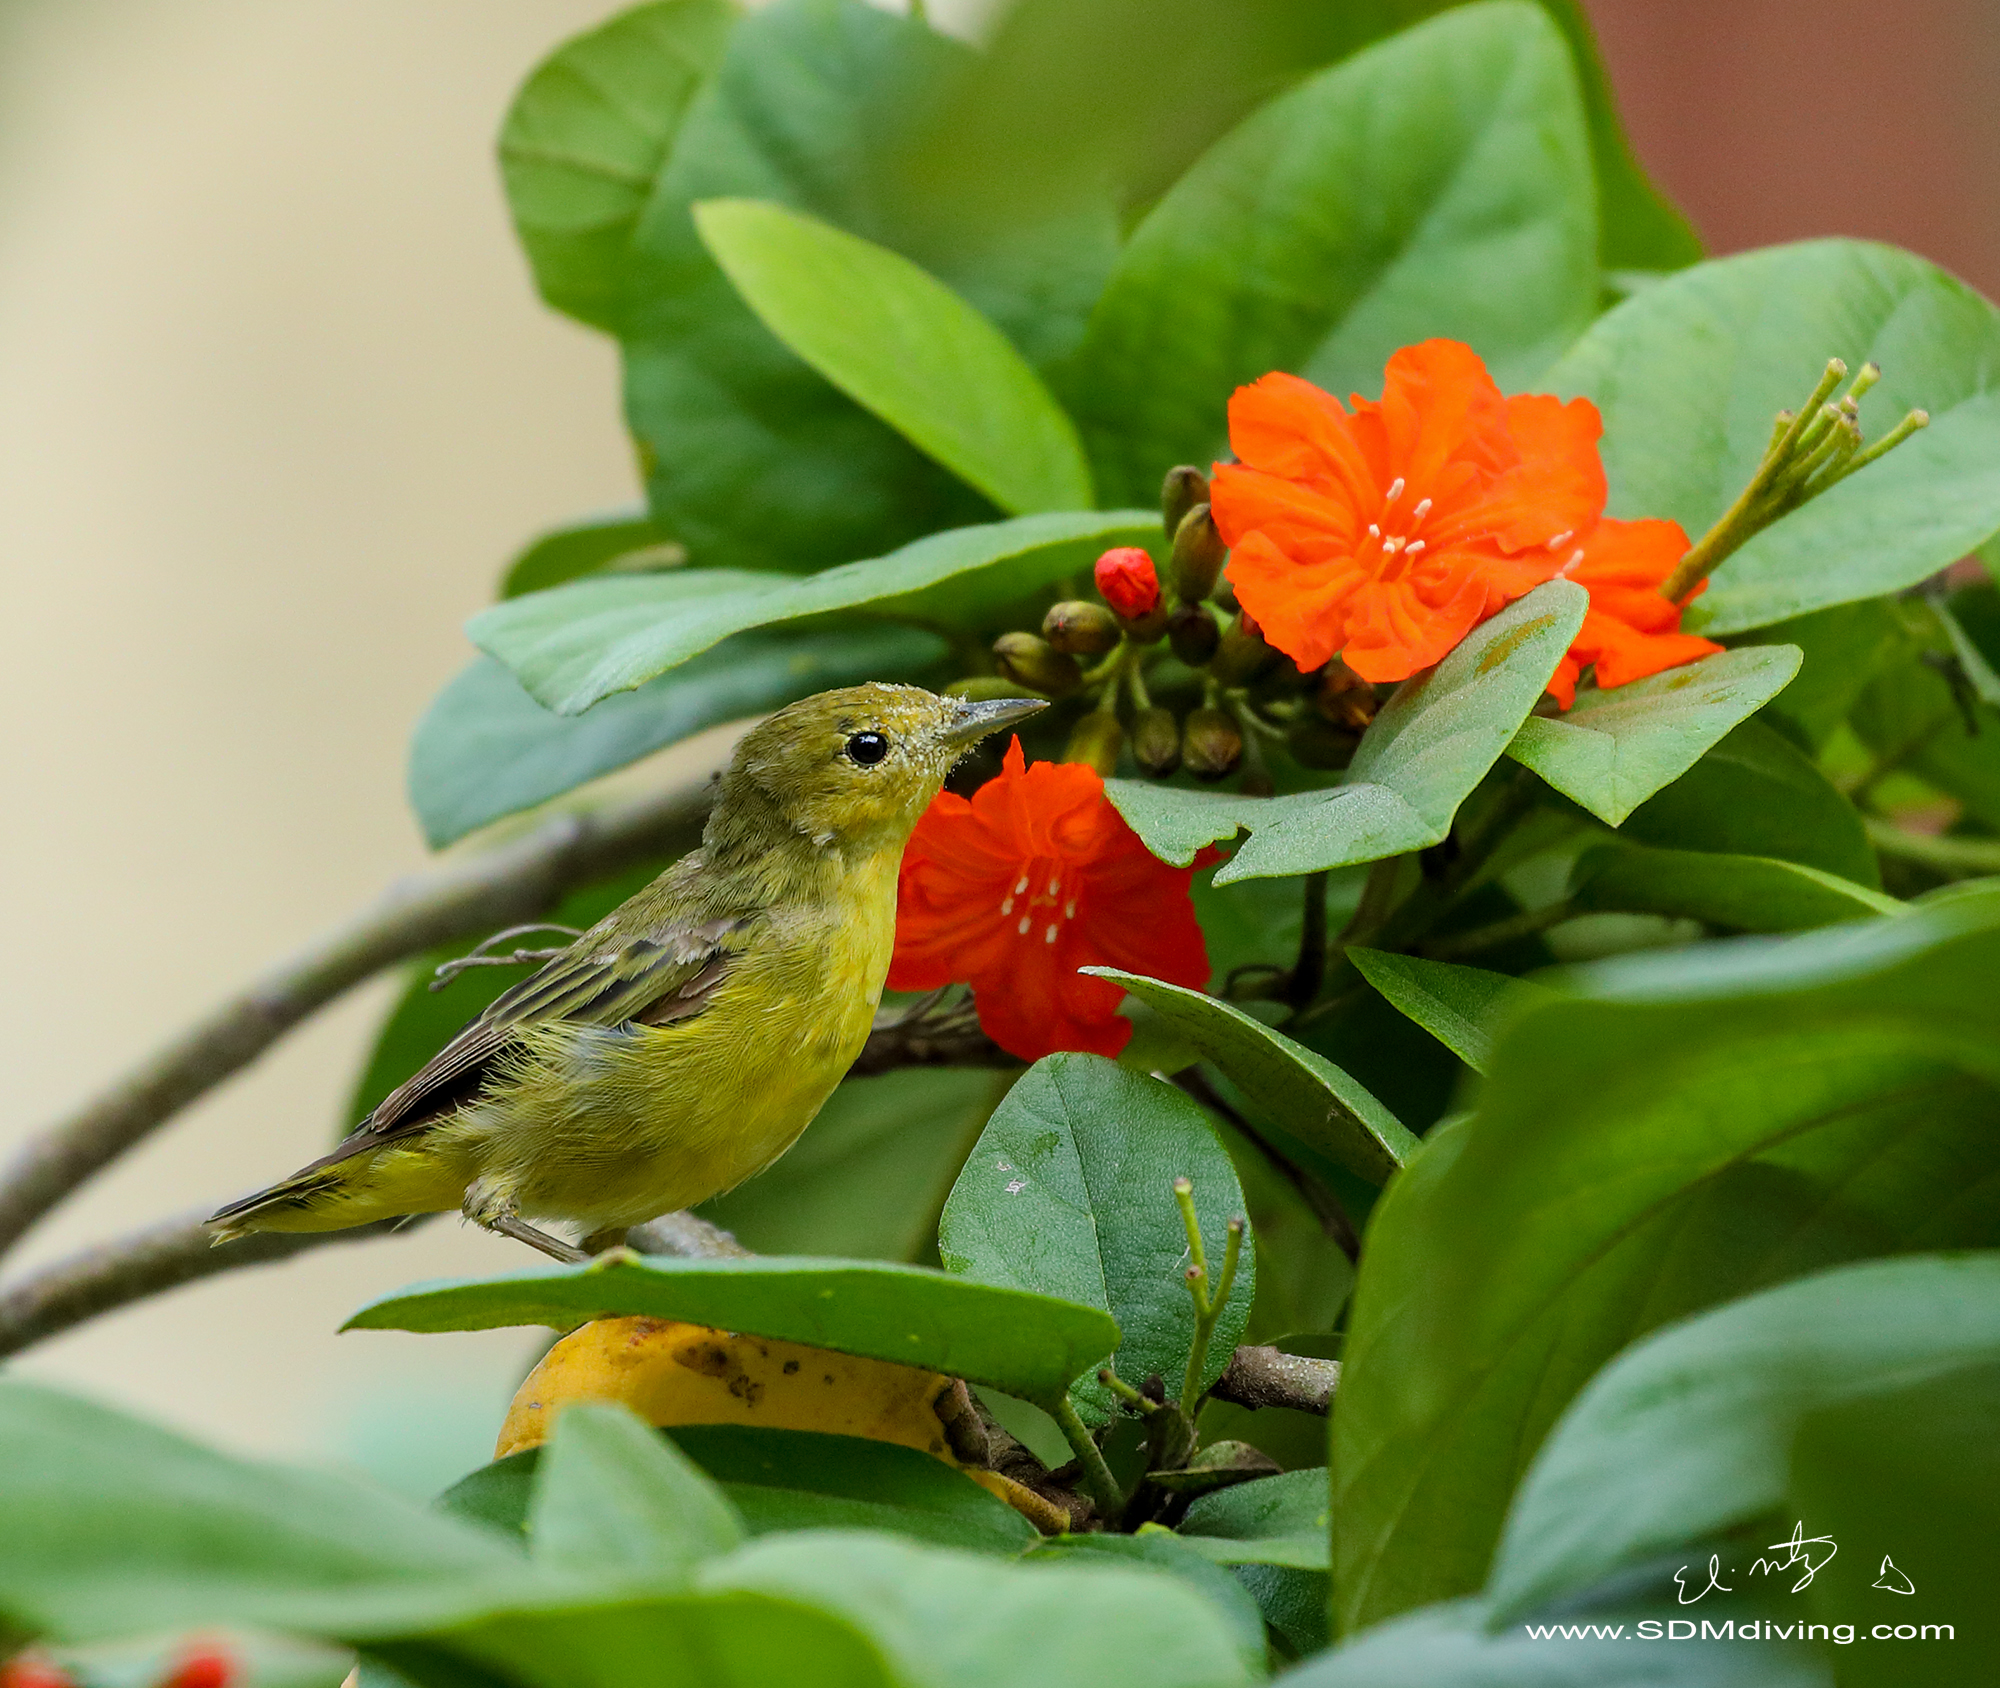 Female mangrove warbler. Below is the male and a pic of the anole.